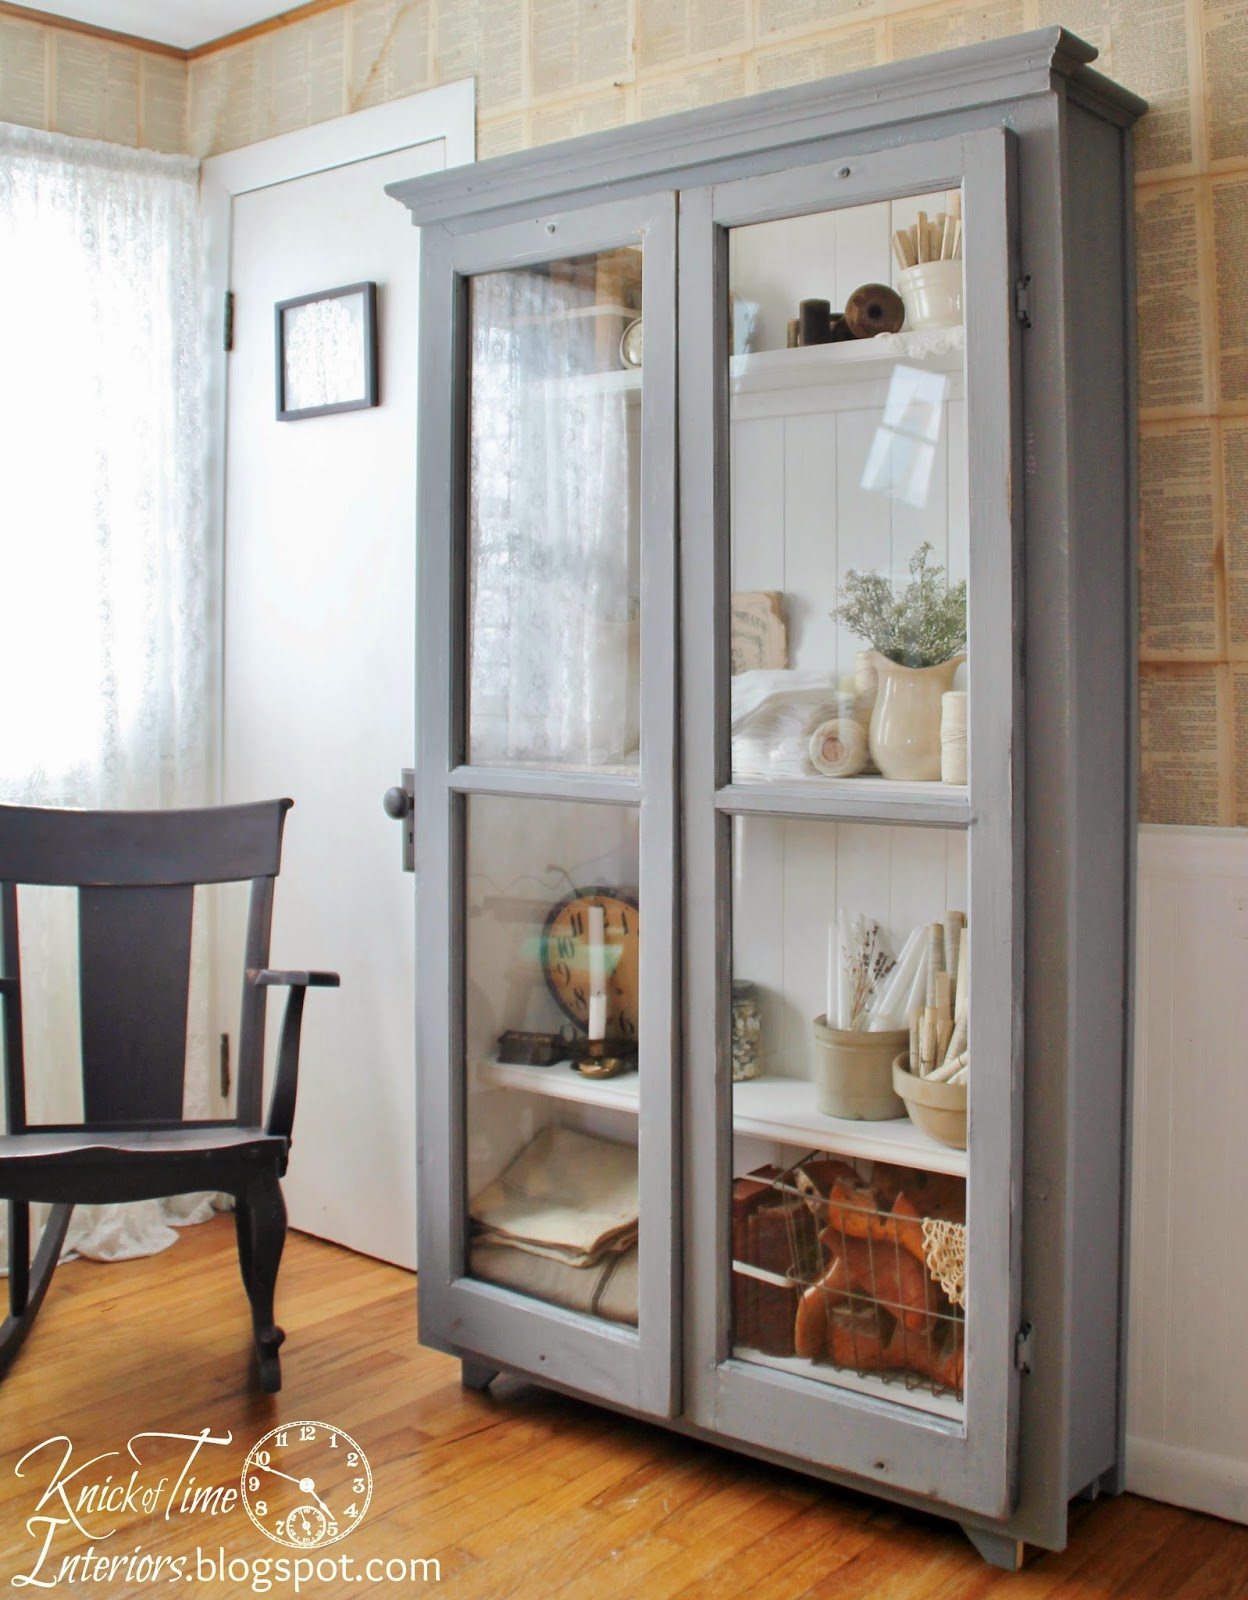 Repurposed Windows into Cupboard inspired by Dreamy Whites - The Making Of An Antique Cupboard Knick Of Time